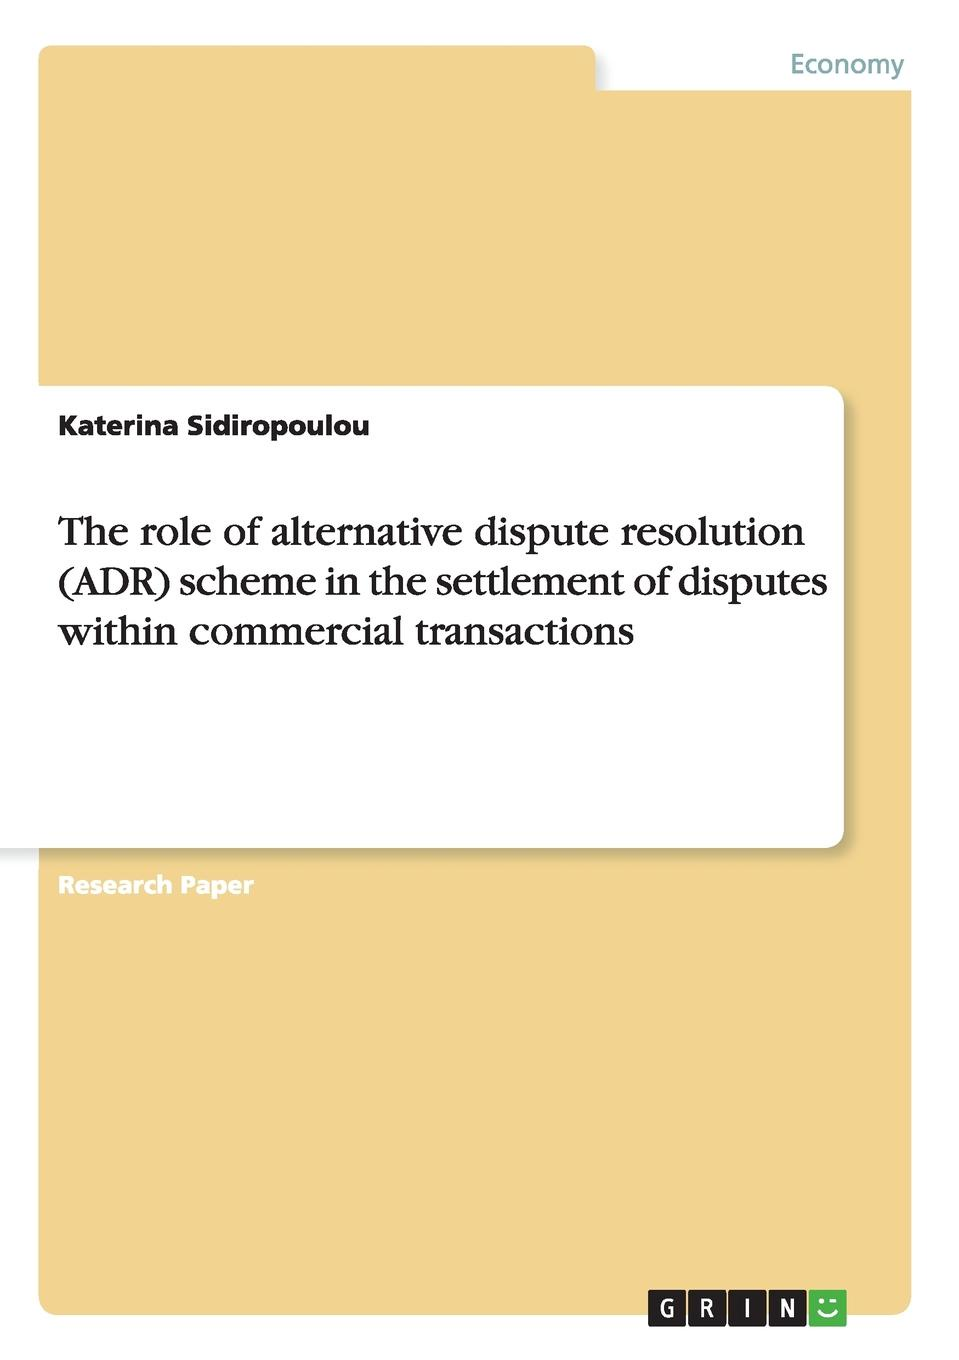 Katerina Sidiropoulou The role of alternative dispute resolution (ADR) scheme in the settlement of disputes within commercial transactions world trade organization dispute settlement reports 2012 volume 9 pages 4583 to 5302